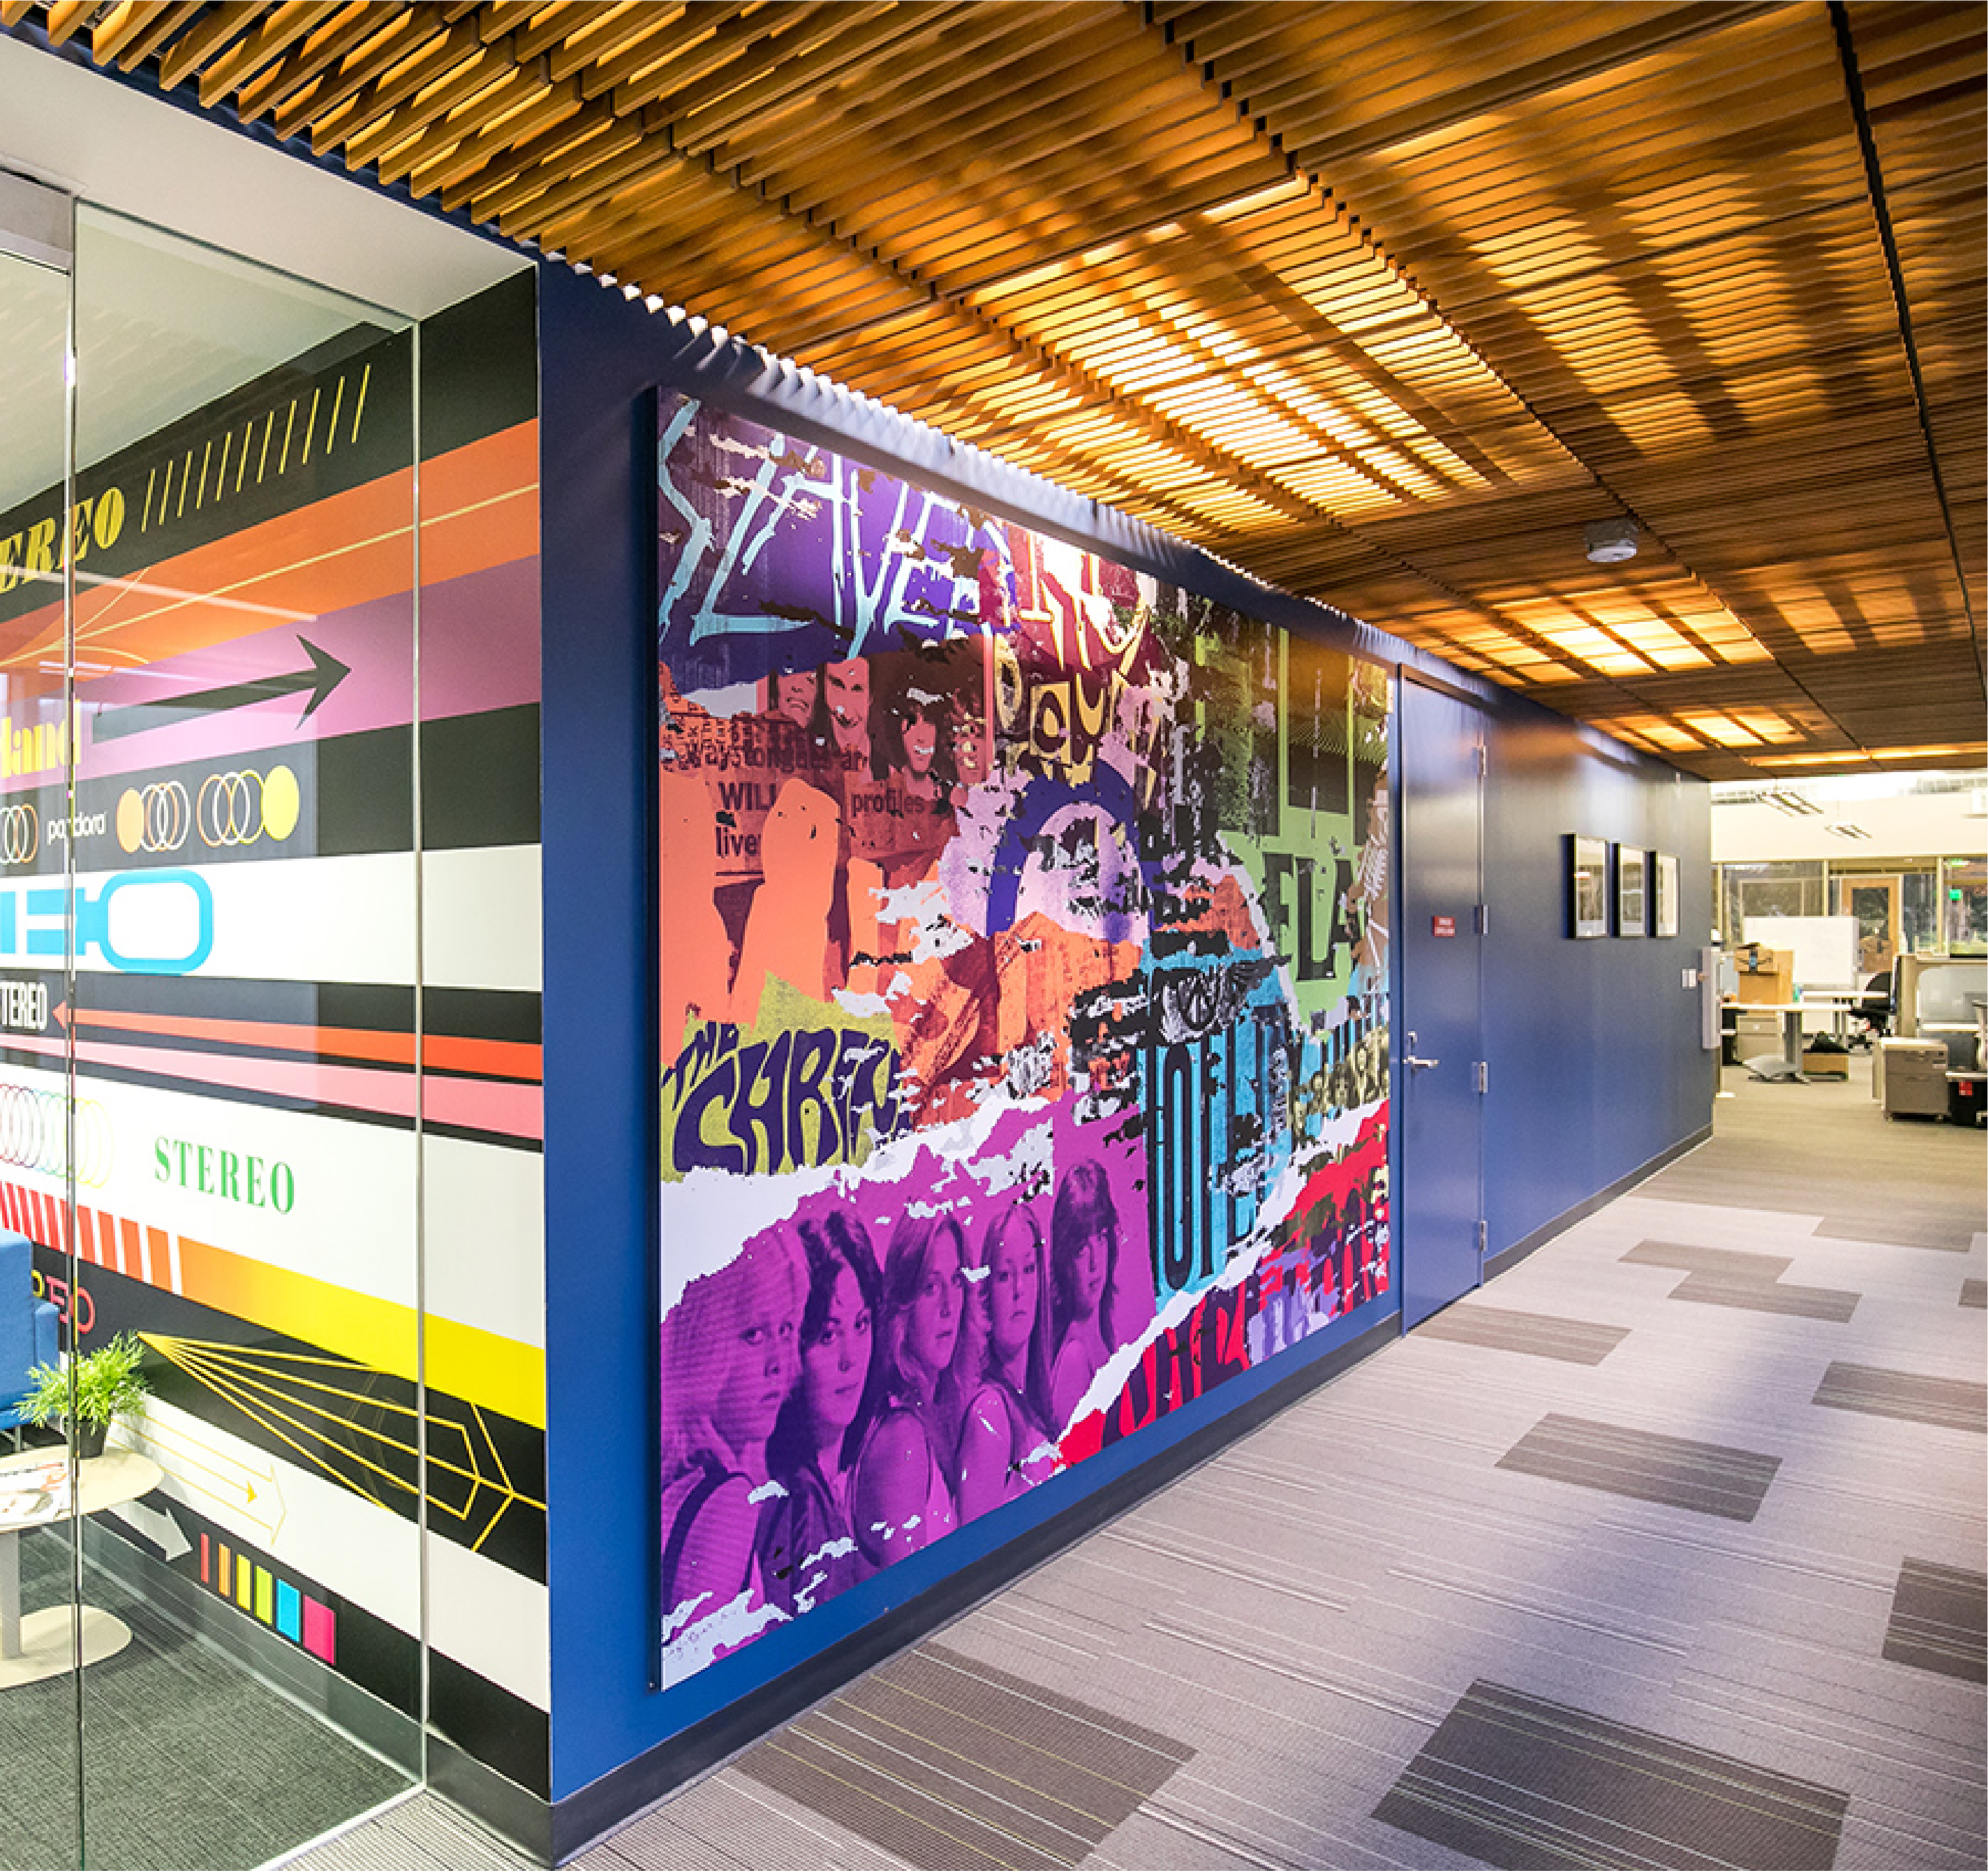 Corporate office installation with graphic design walls